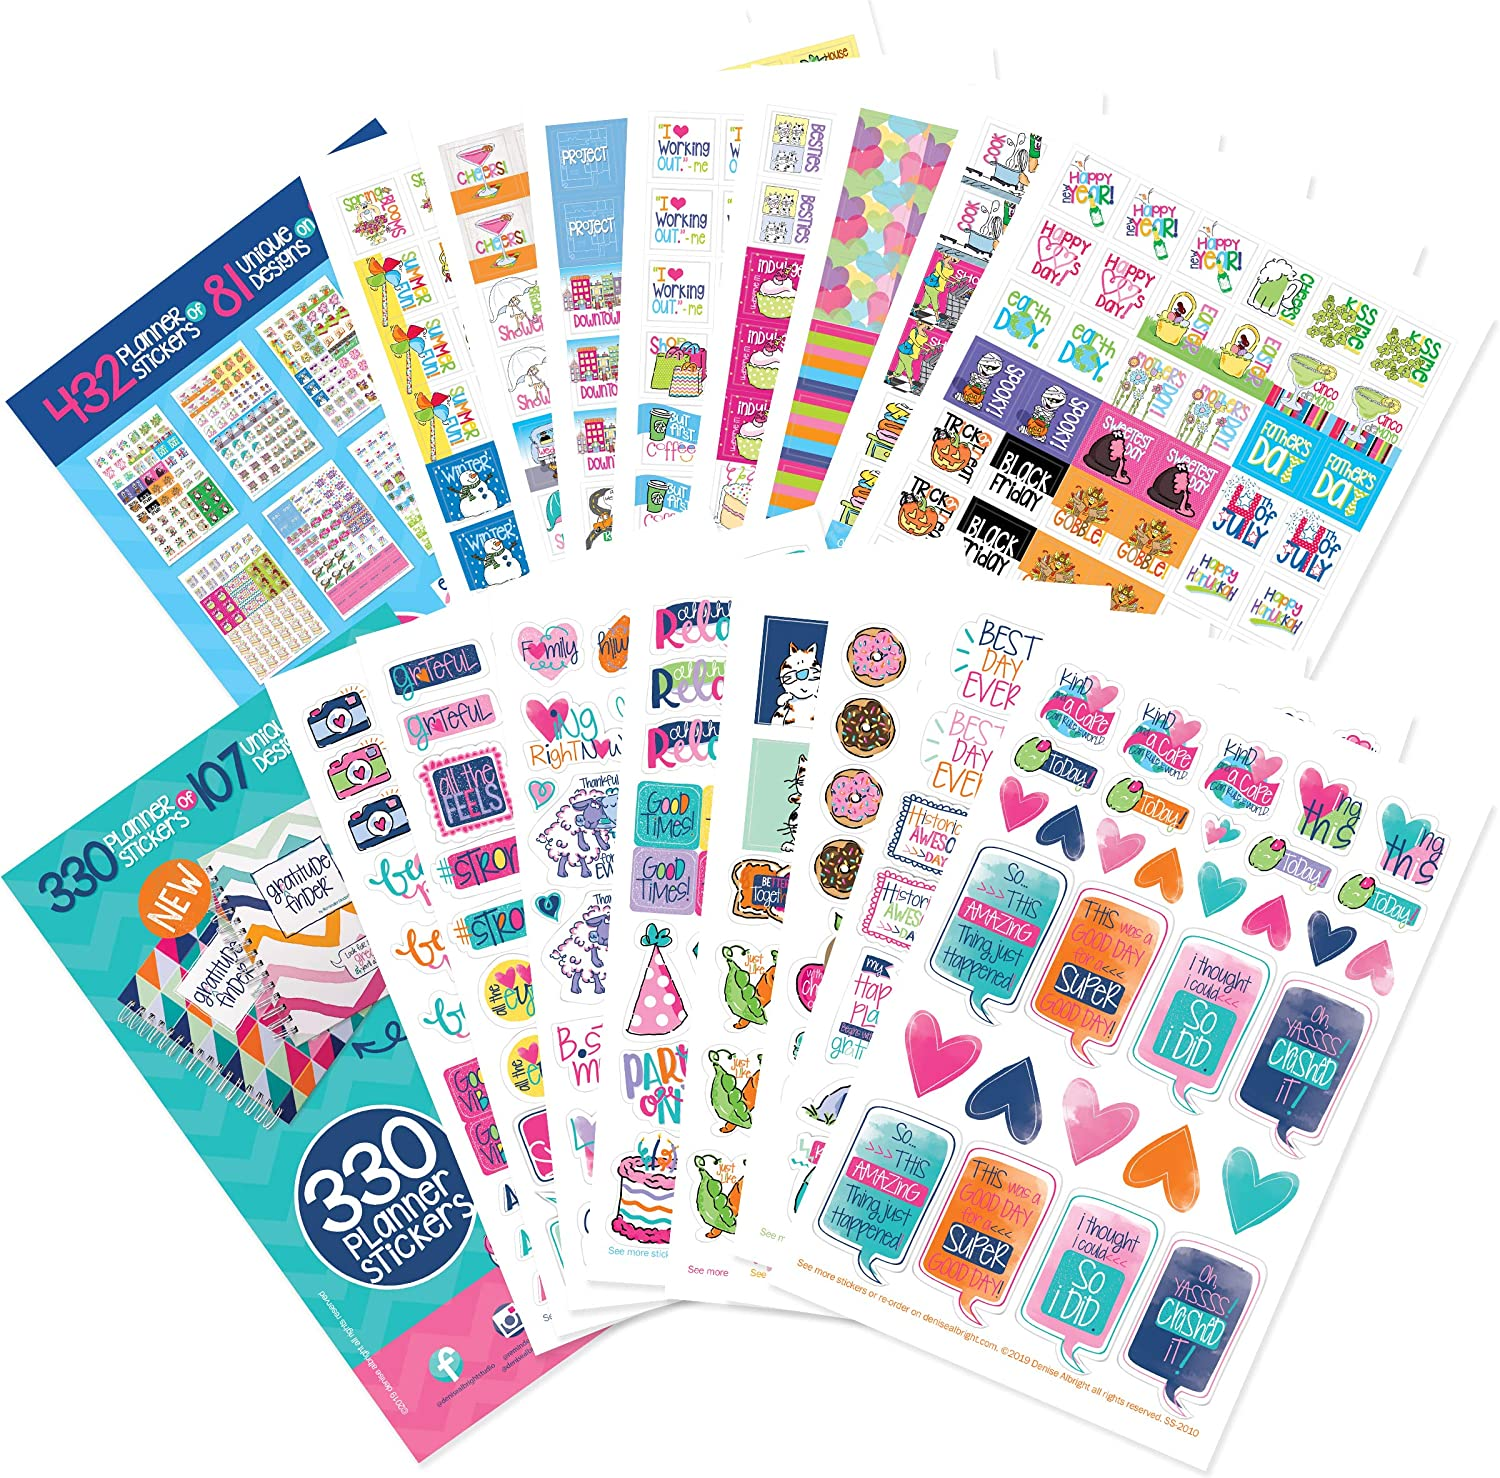 762 Planner Stickers Bundle for Every Gal Including Holidays, Birthdays, Date Nights, Party, Work Deadlines, Travel for Calendars and Daily Thankfulness & Gratitude Journals & Bullet Journaling